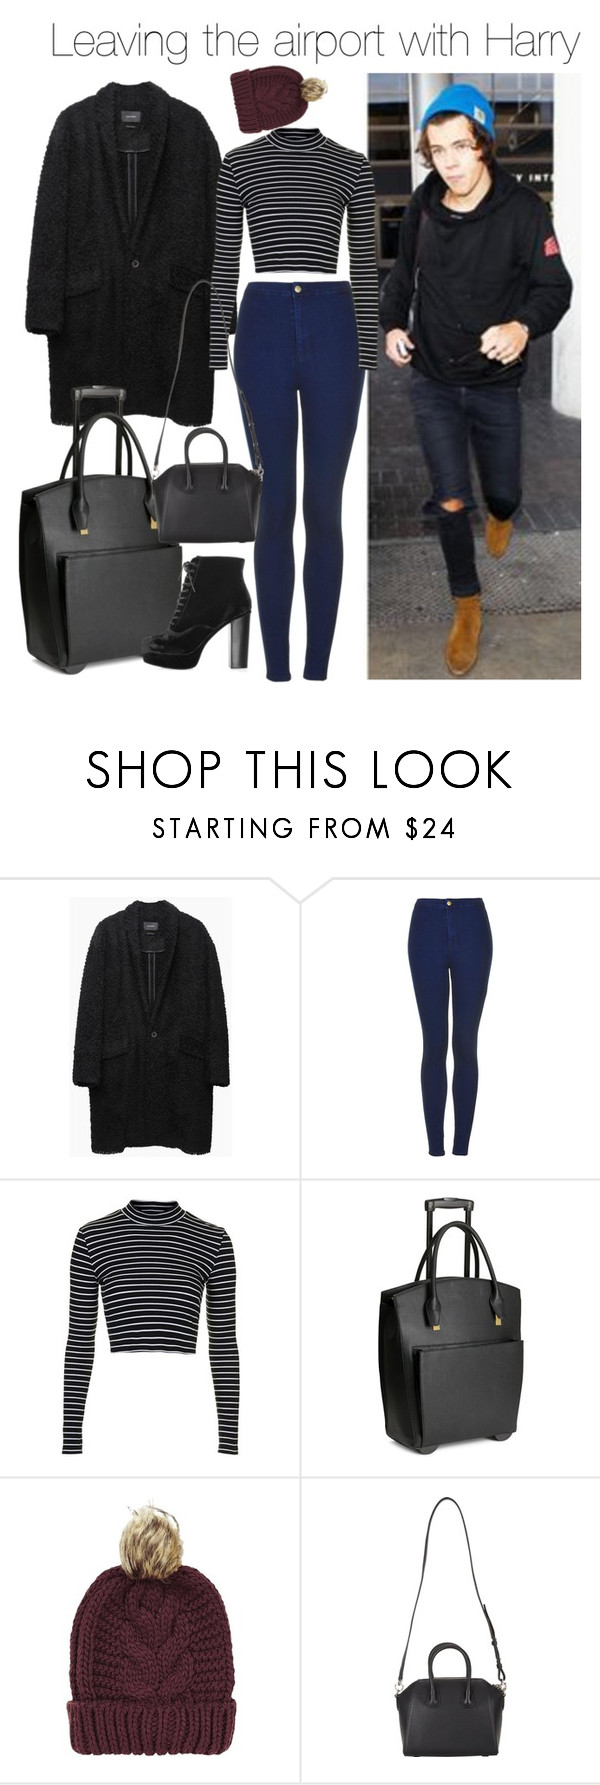 """Untitled #1693"" by danielle-eleanor-perrie-1 ❤ liked on Polyvore featuring Isabel Marant, Topshop, H&M and Givenchy"